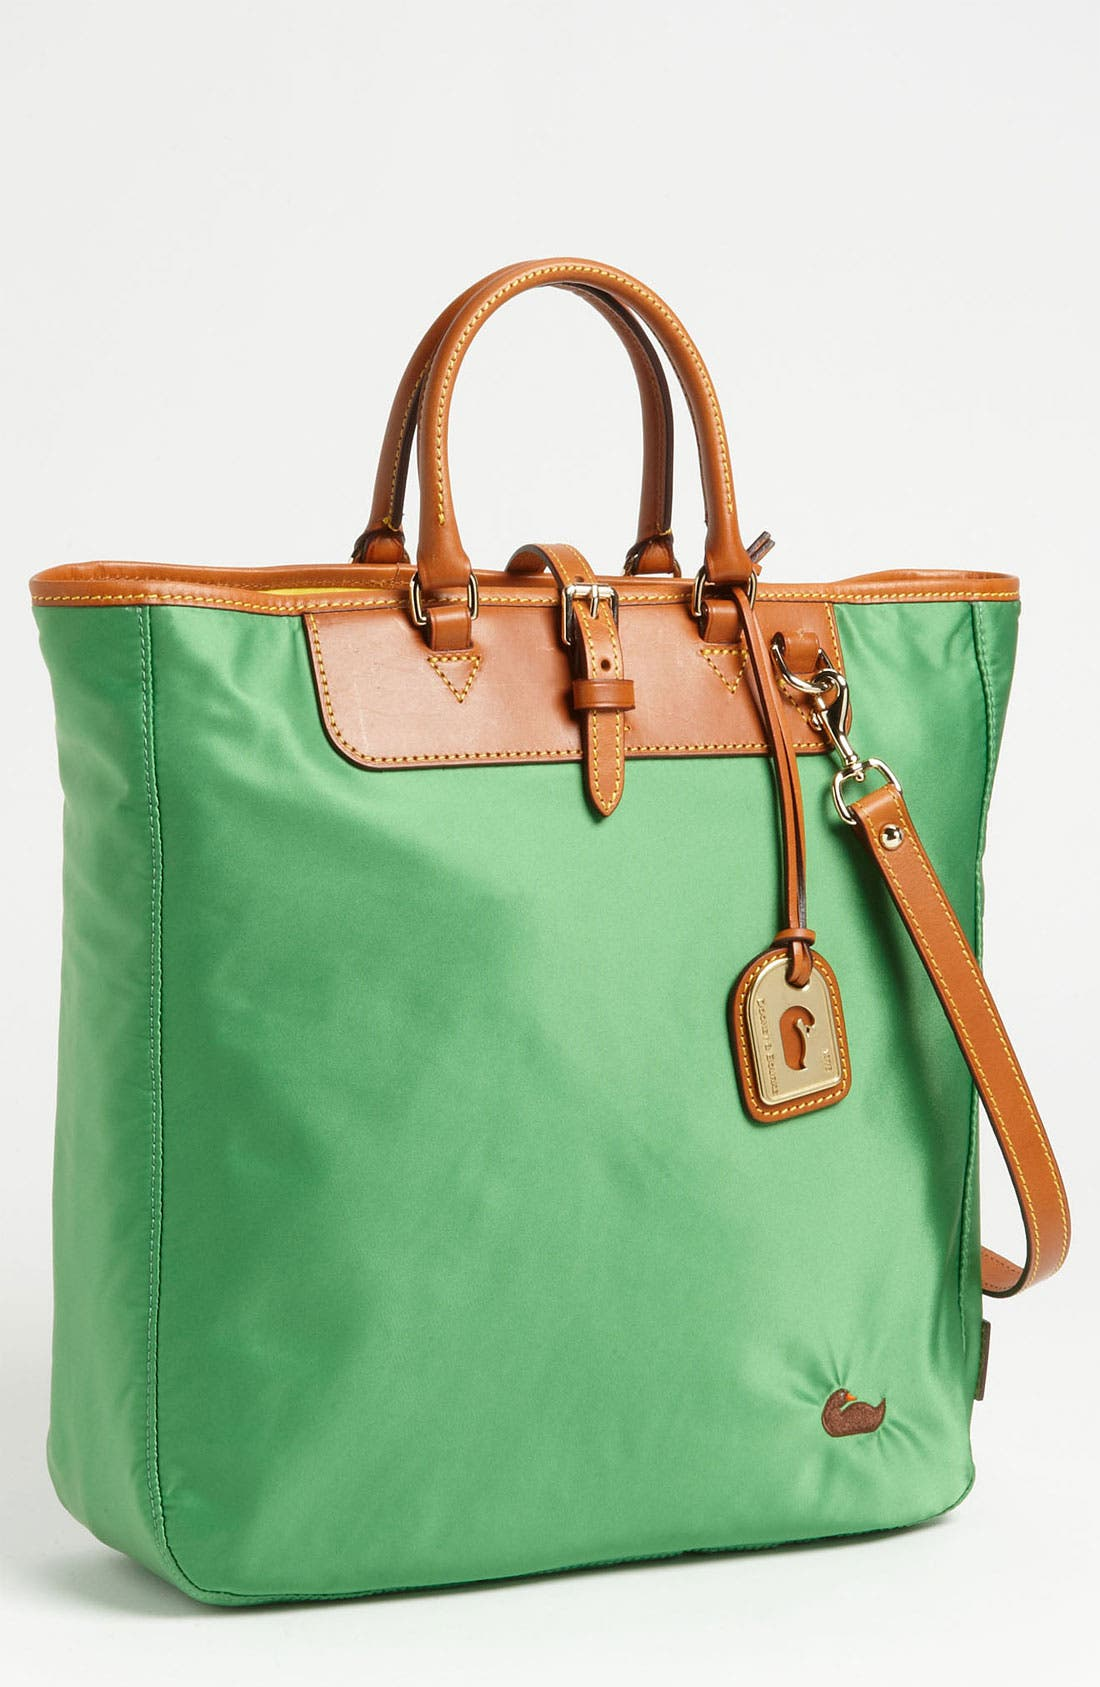 Alternate Image 1 Selected - Dooney & Bourke 'Editors' Tote